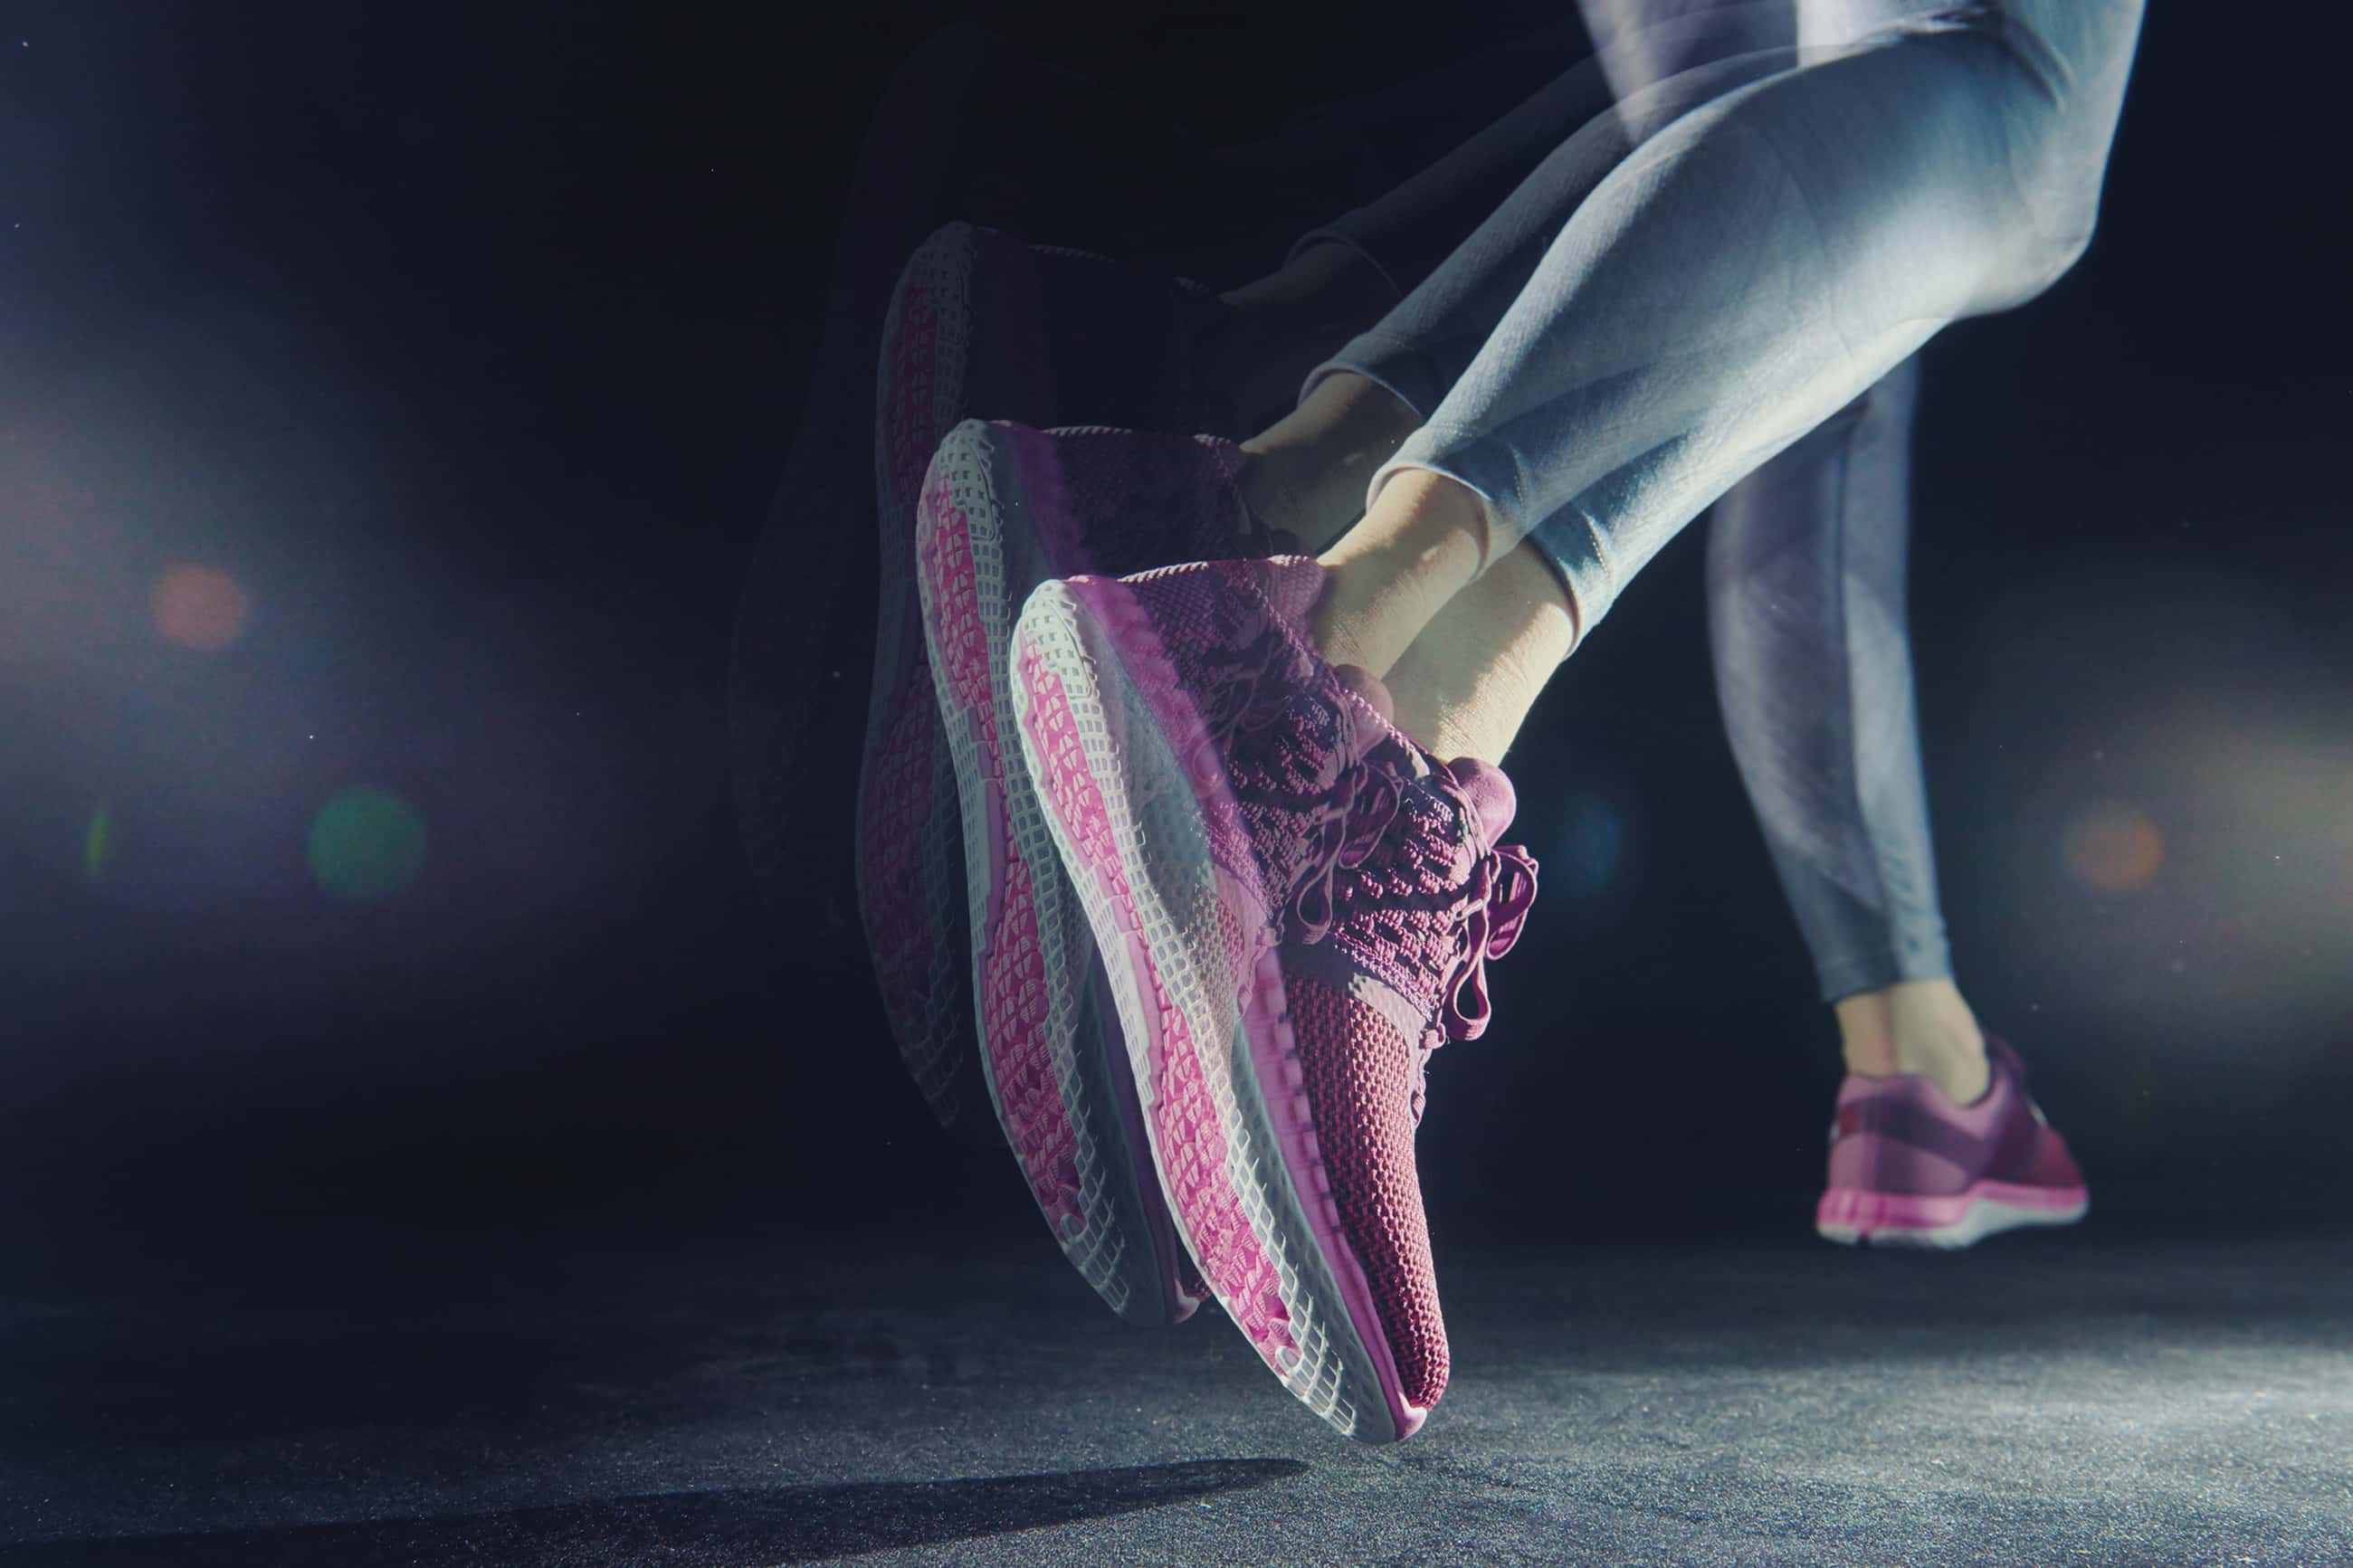 photo of a pair of feet in pink sneakers apparently running